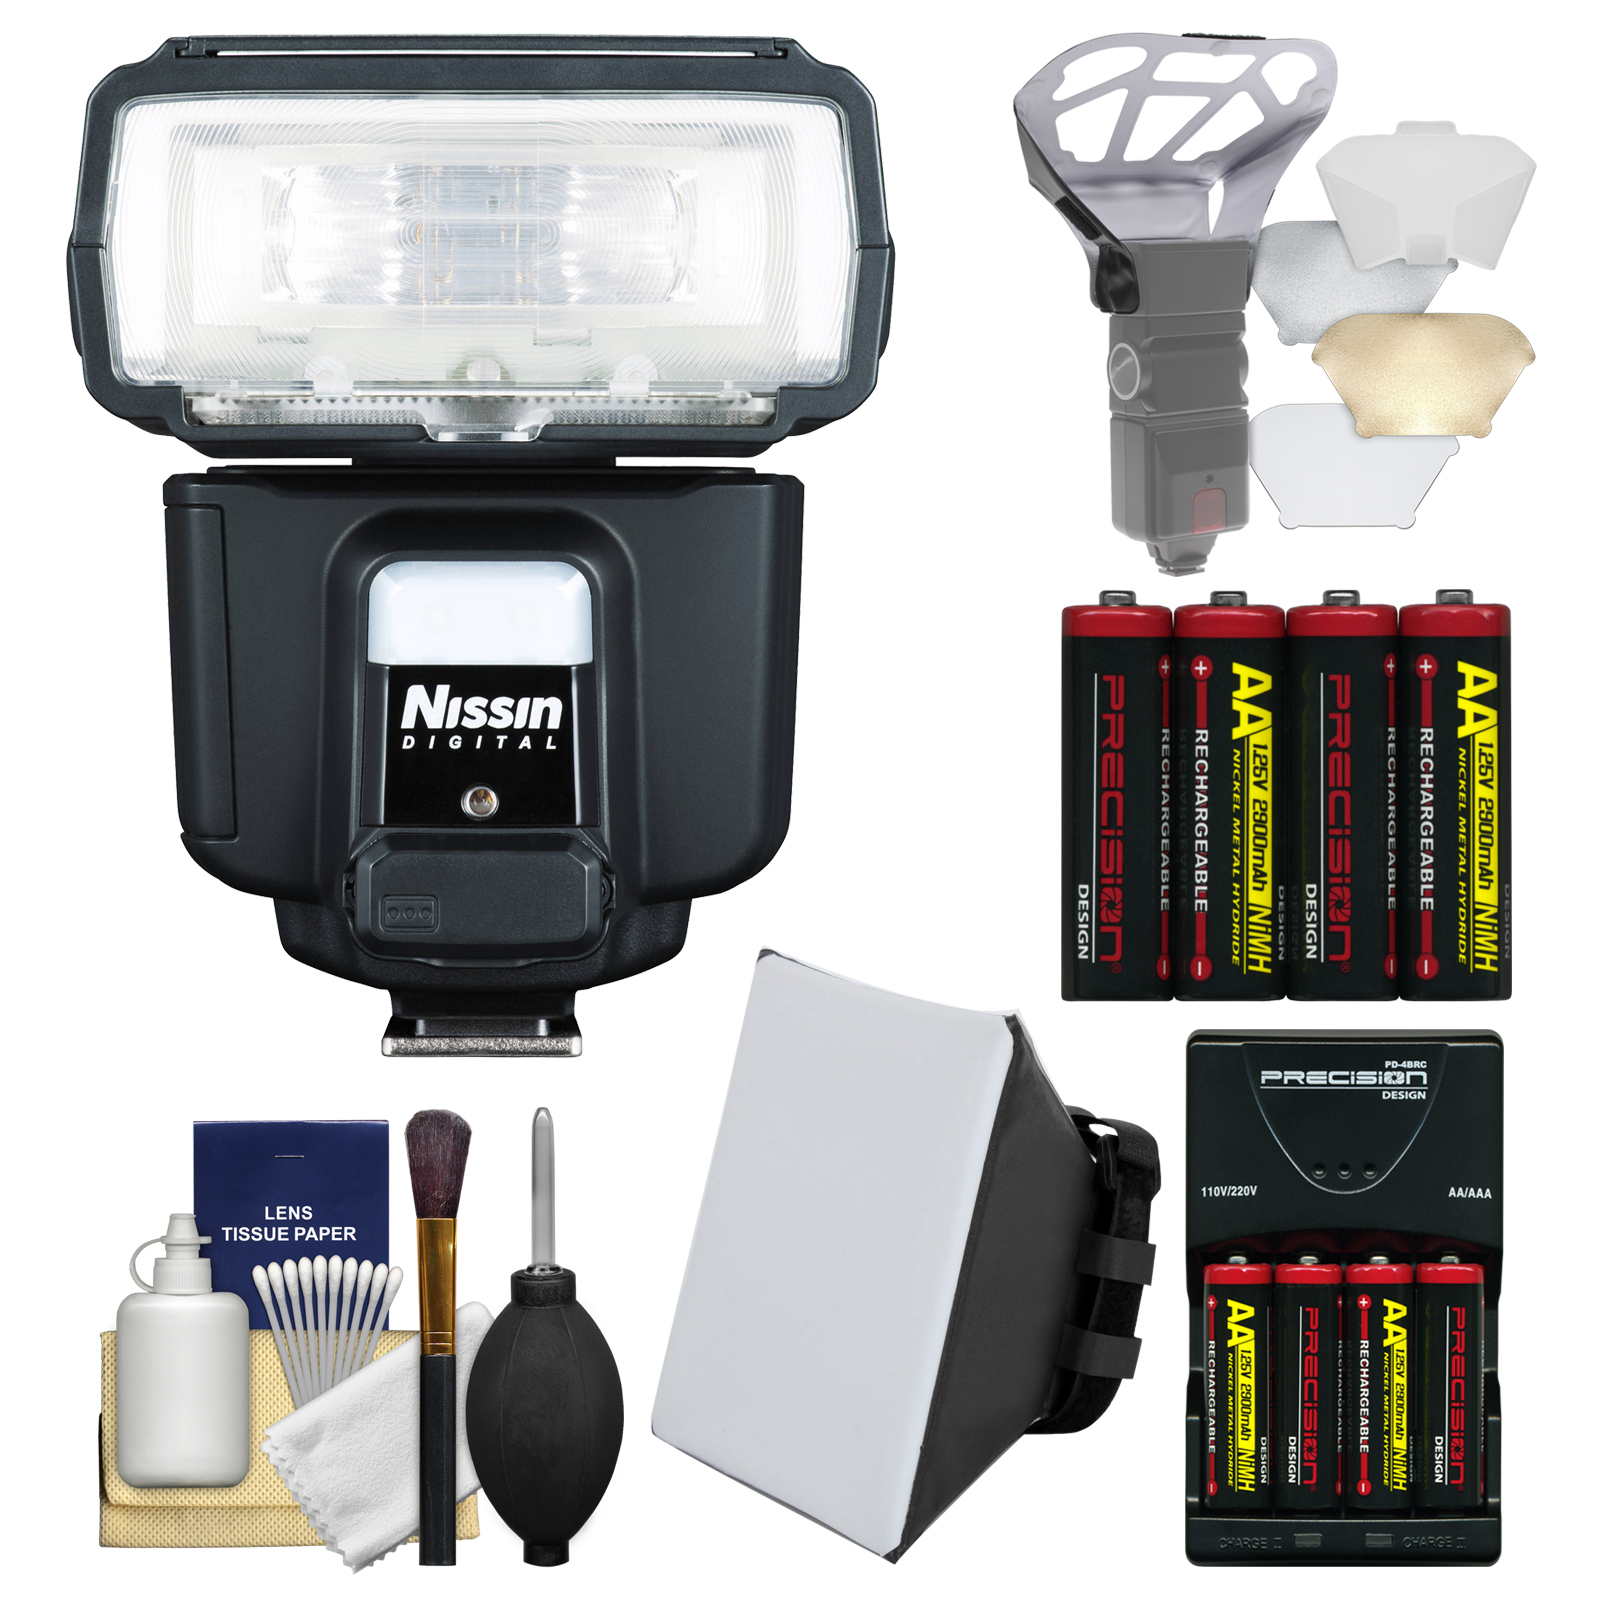 NISSIN Digital i60A Air Wireless Zoom Flash with Soft Box + Bounce Diffuser + Batteries & Charger + Kit for Canon EOS E-TTL Digital SLR Cameras